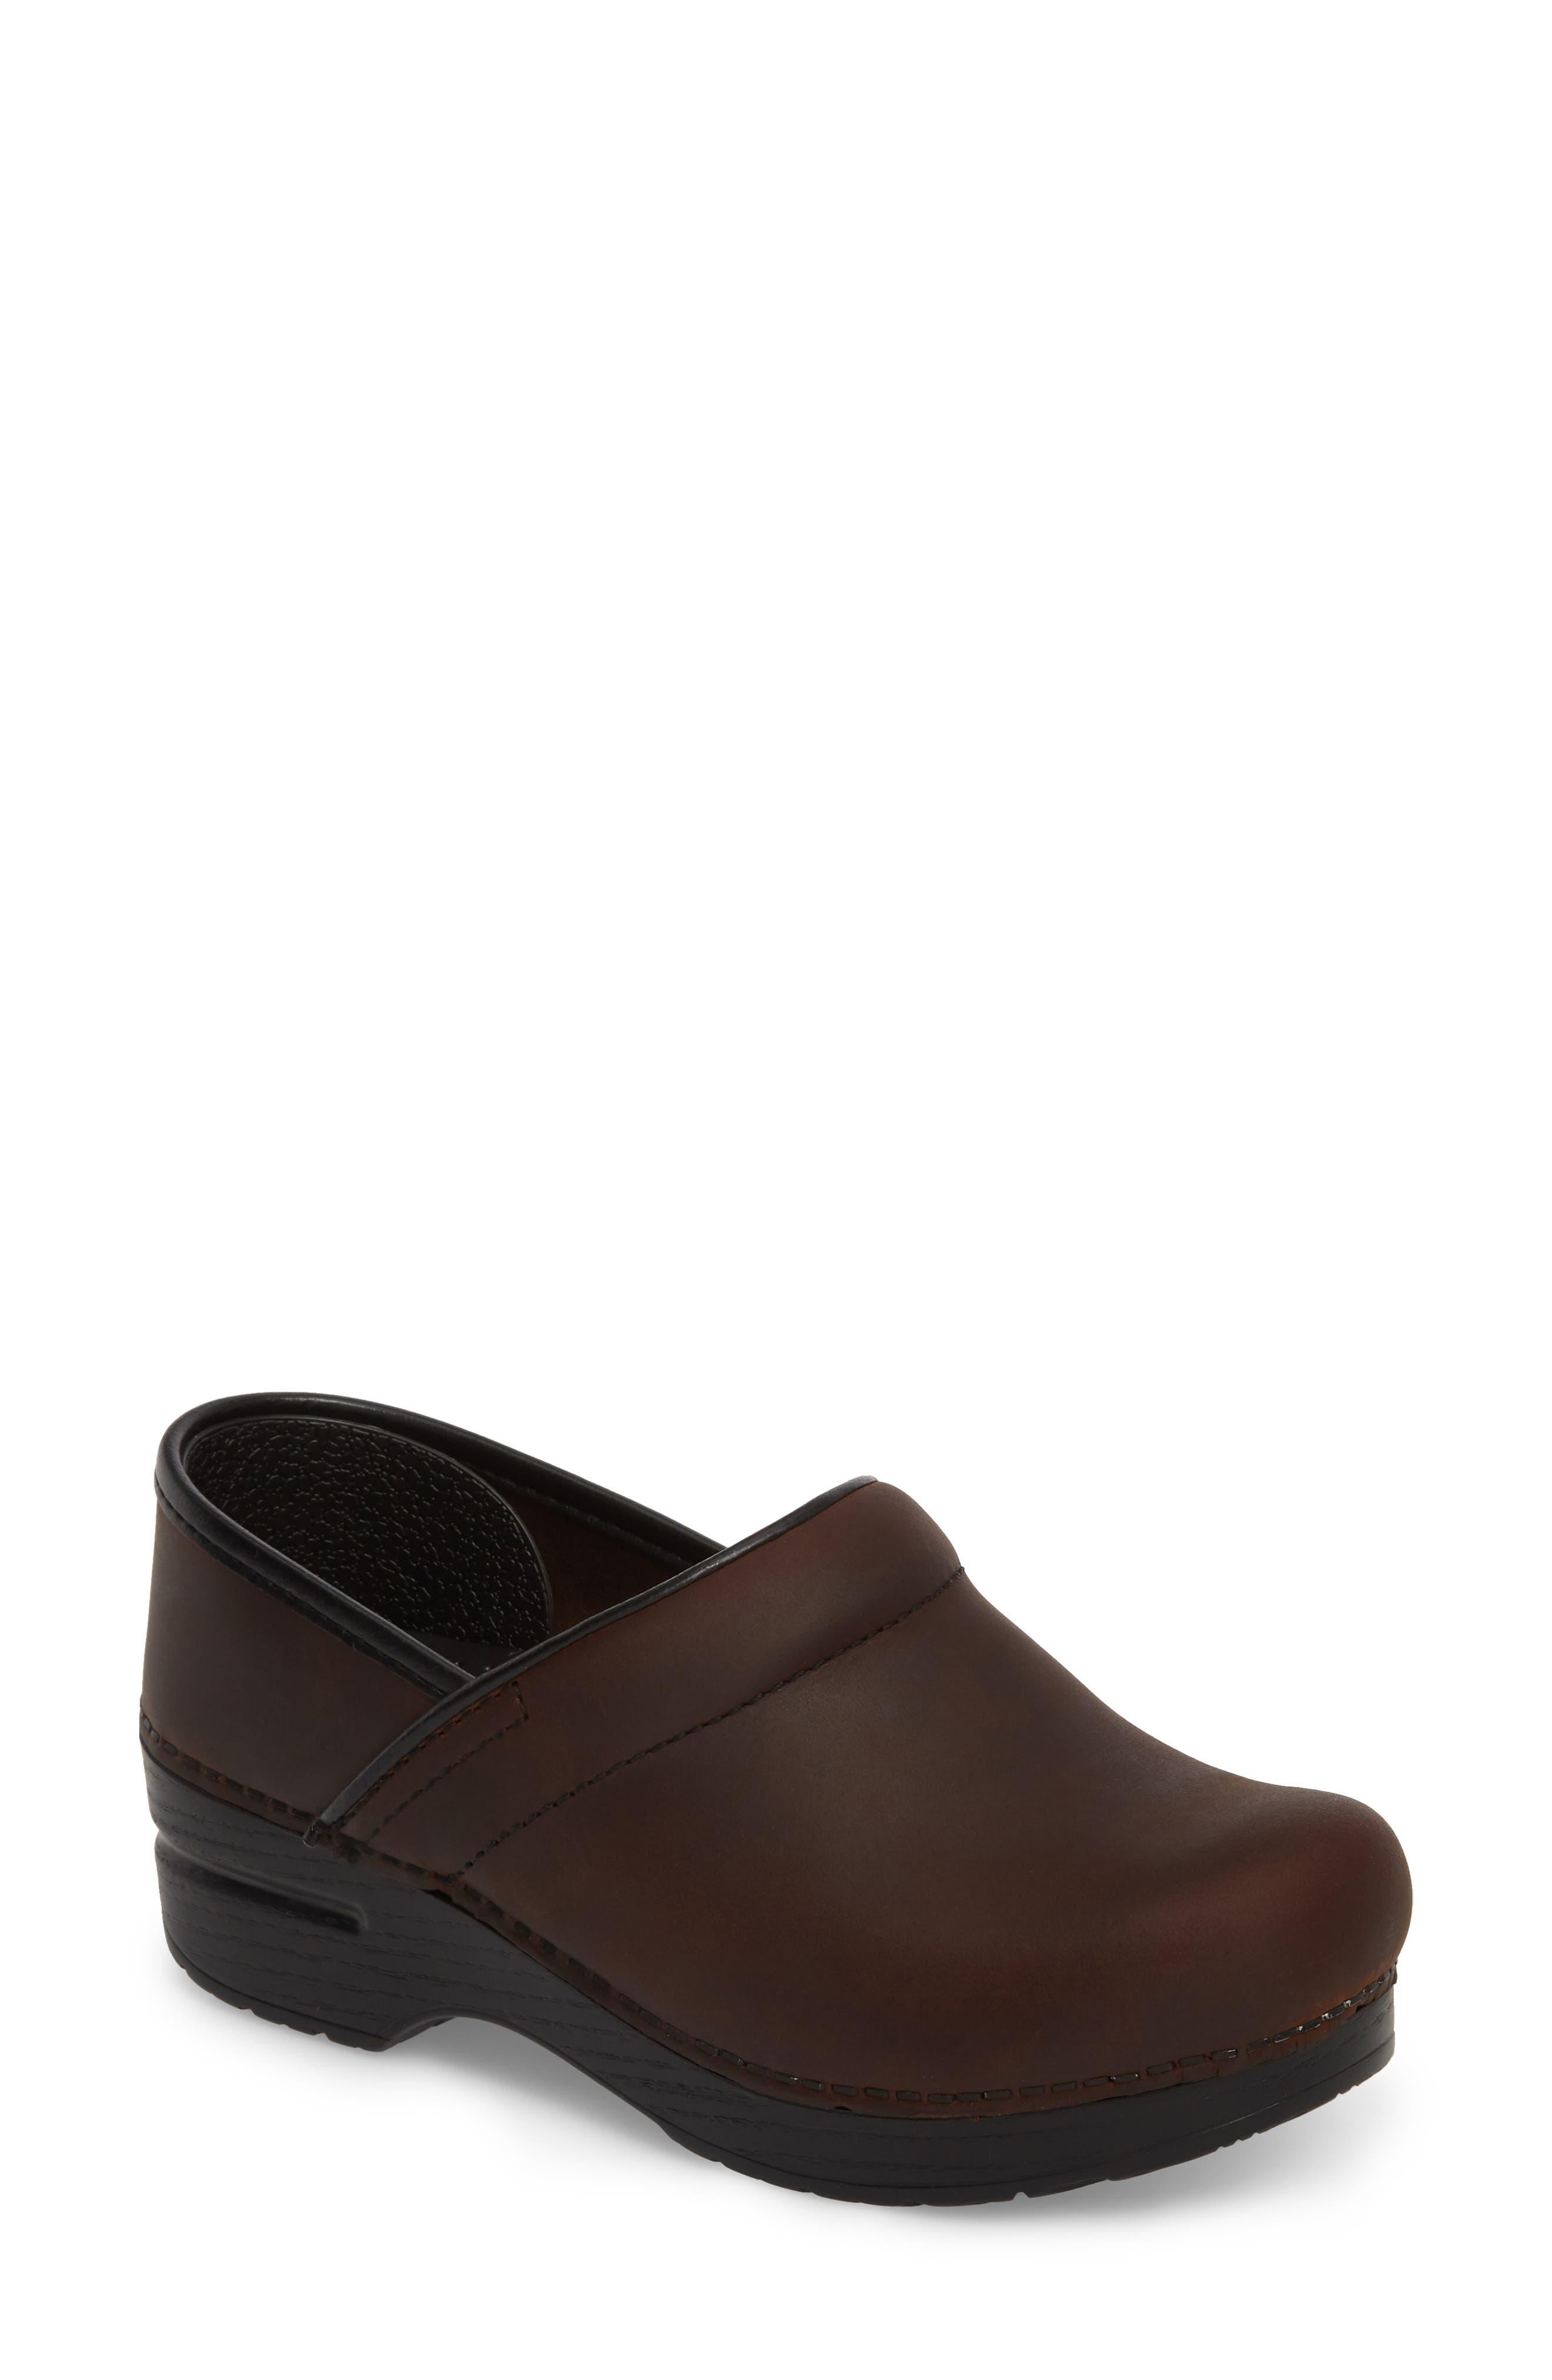 DANSKO Wide Pro Clog, Main, color, ANTIQUE BROWN/ BLACK LEATHER